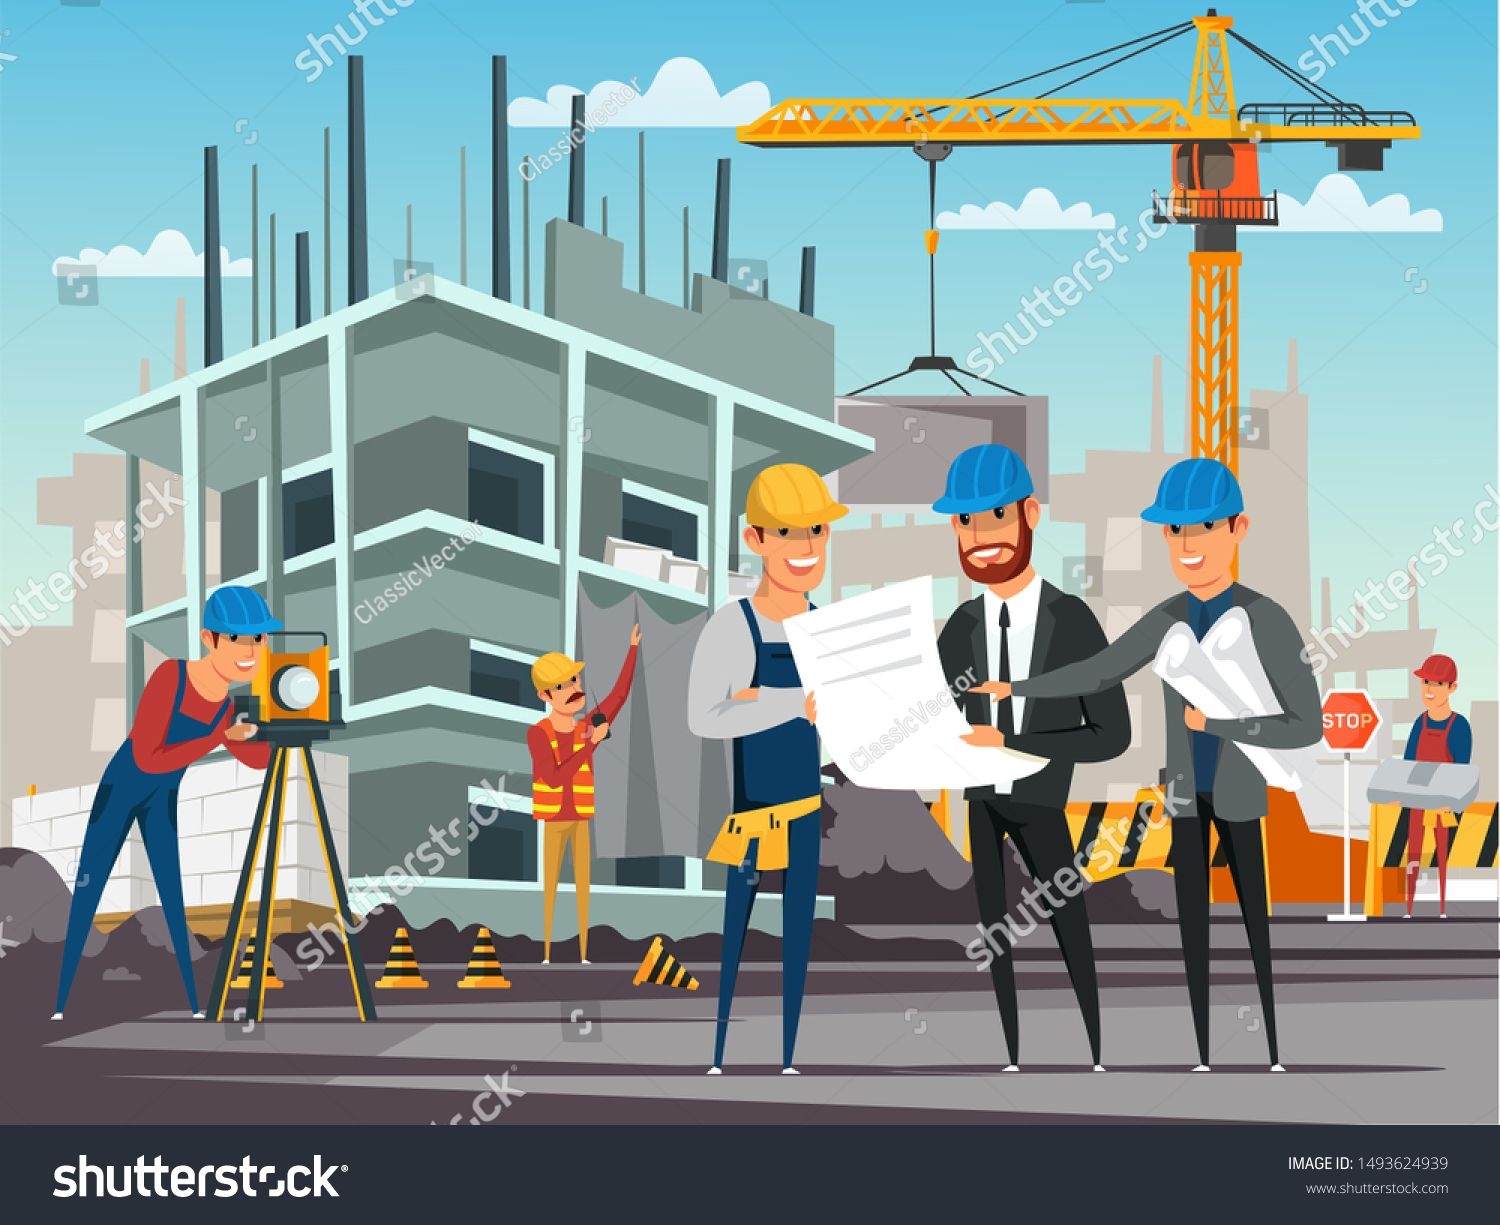 Building Under Construction Flat Illustration Foreman And Architects Discussing Architectural Project Builders O Flat Illustration Stock Photos Photo Editing